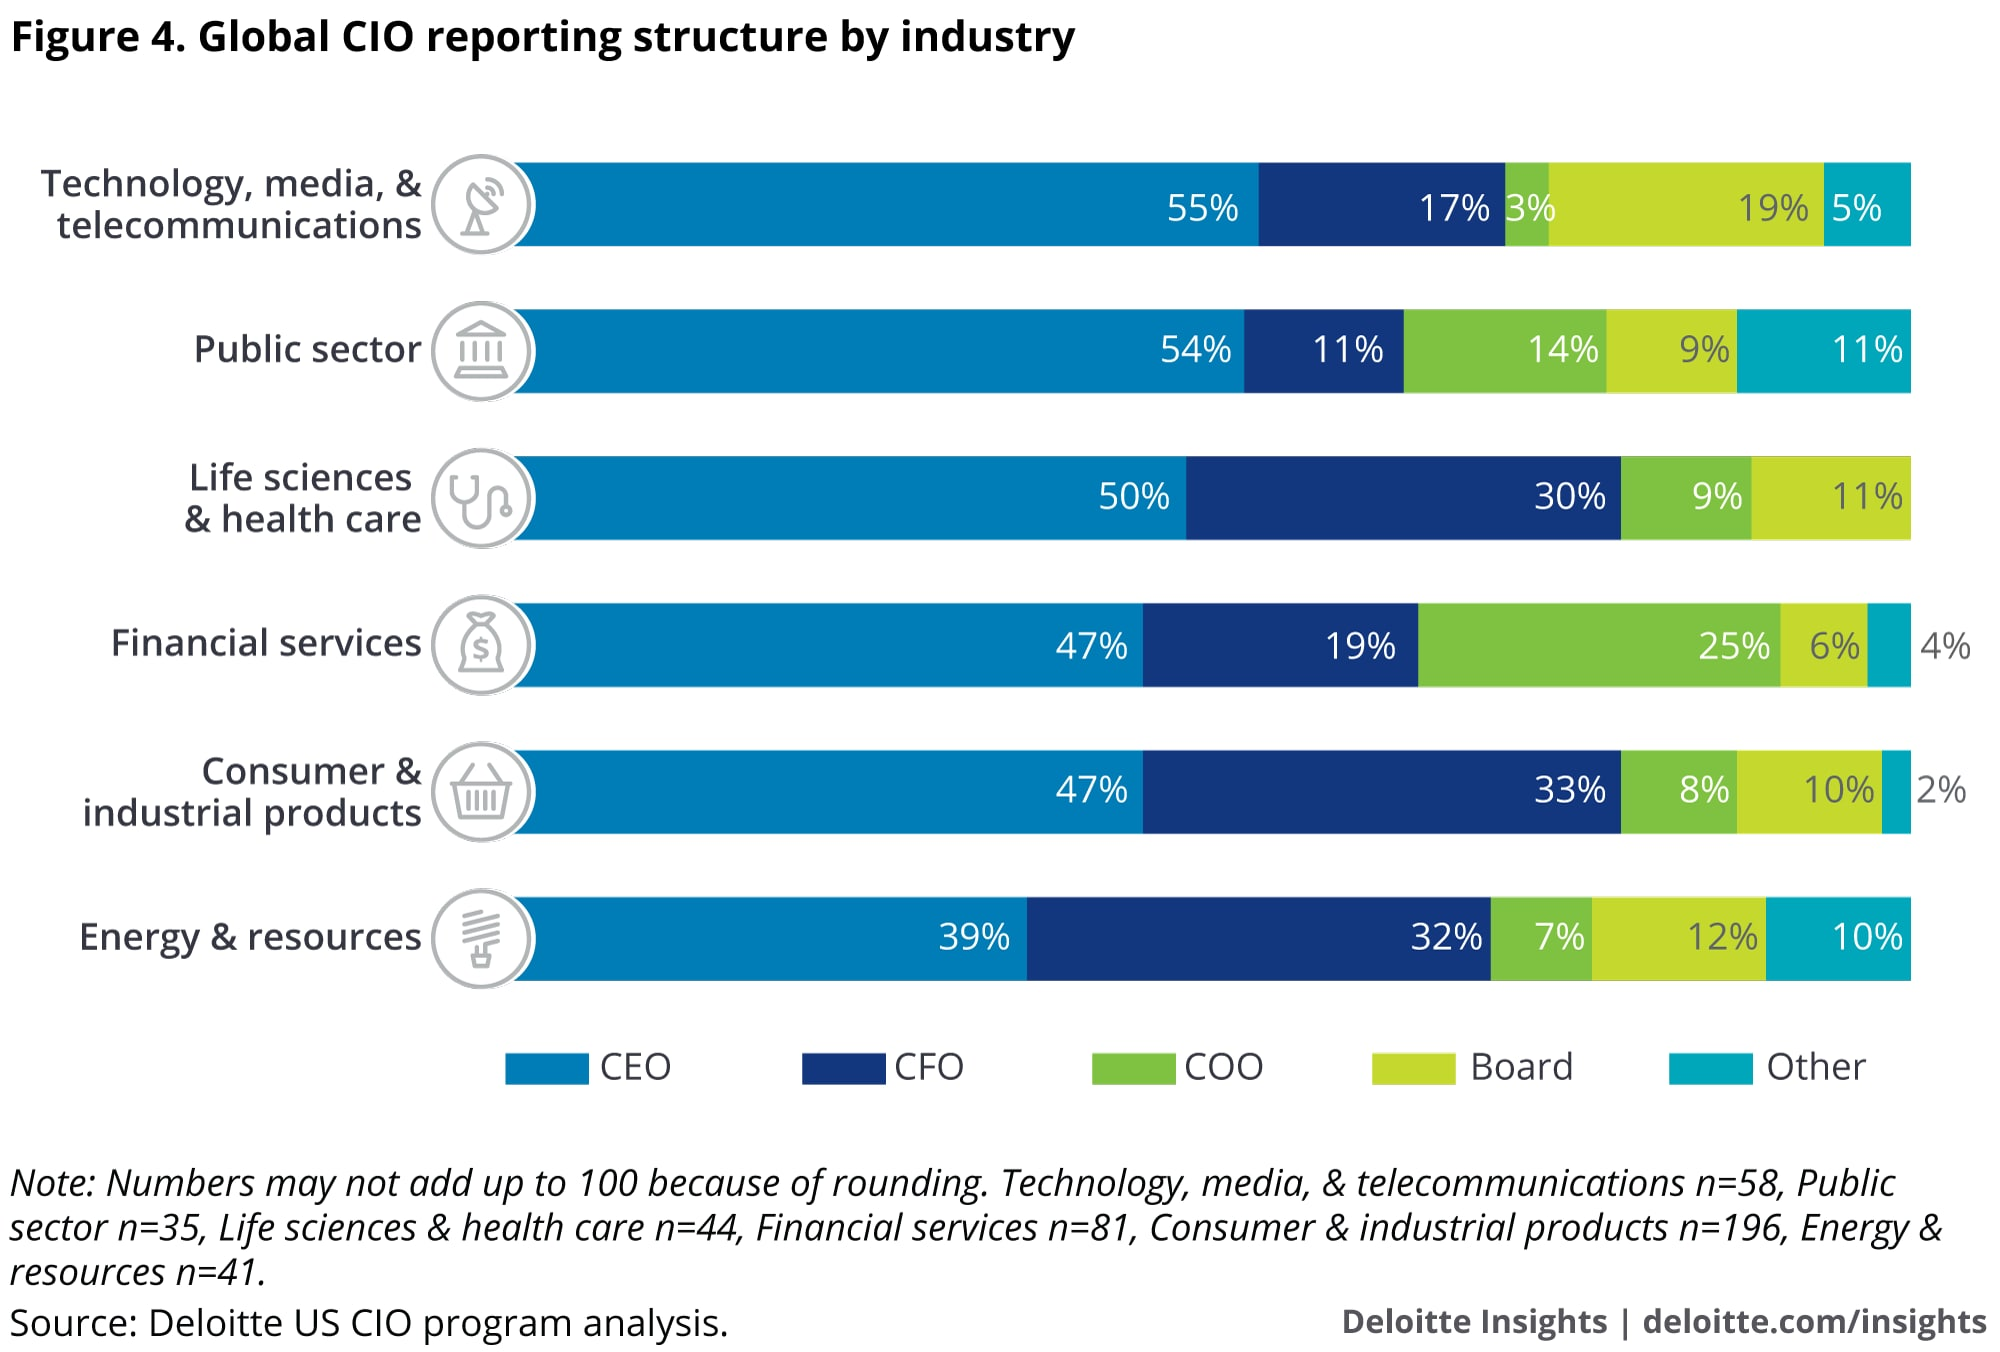 Global CIO reporting structure by industry